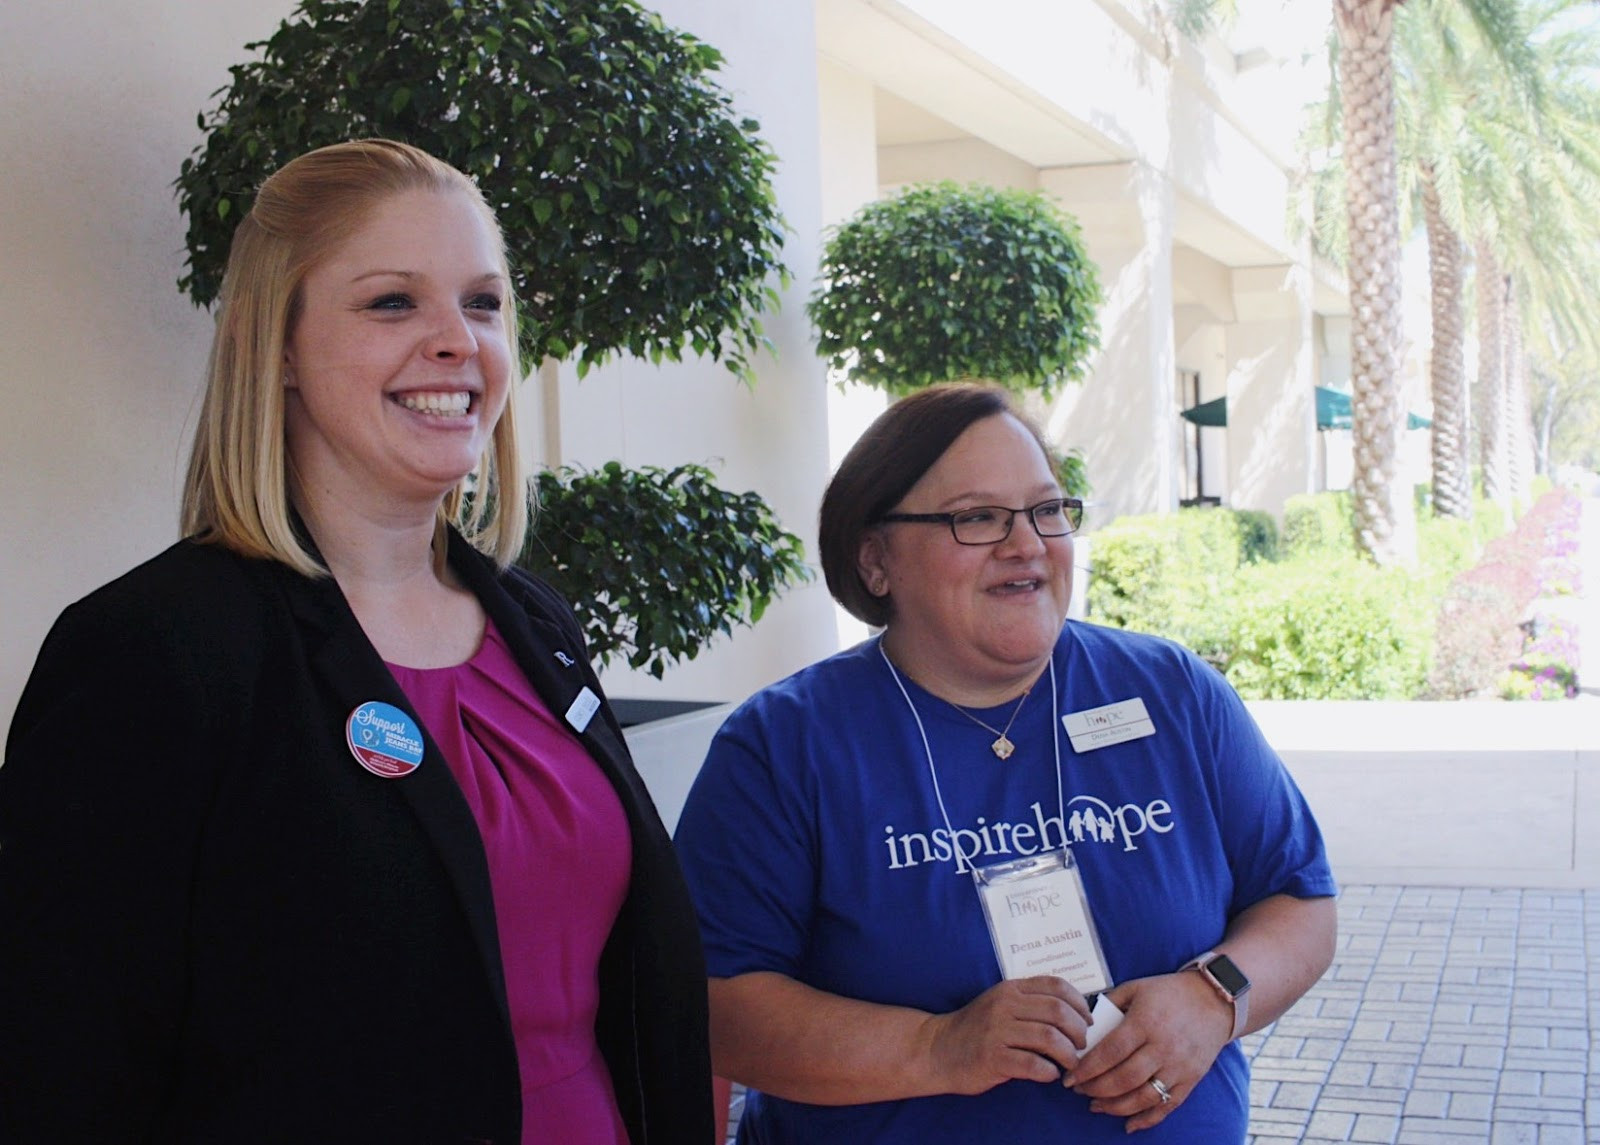 Dena greets new families alongside Renaissance Orlando staff.